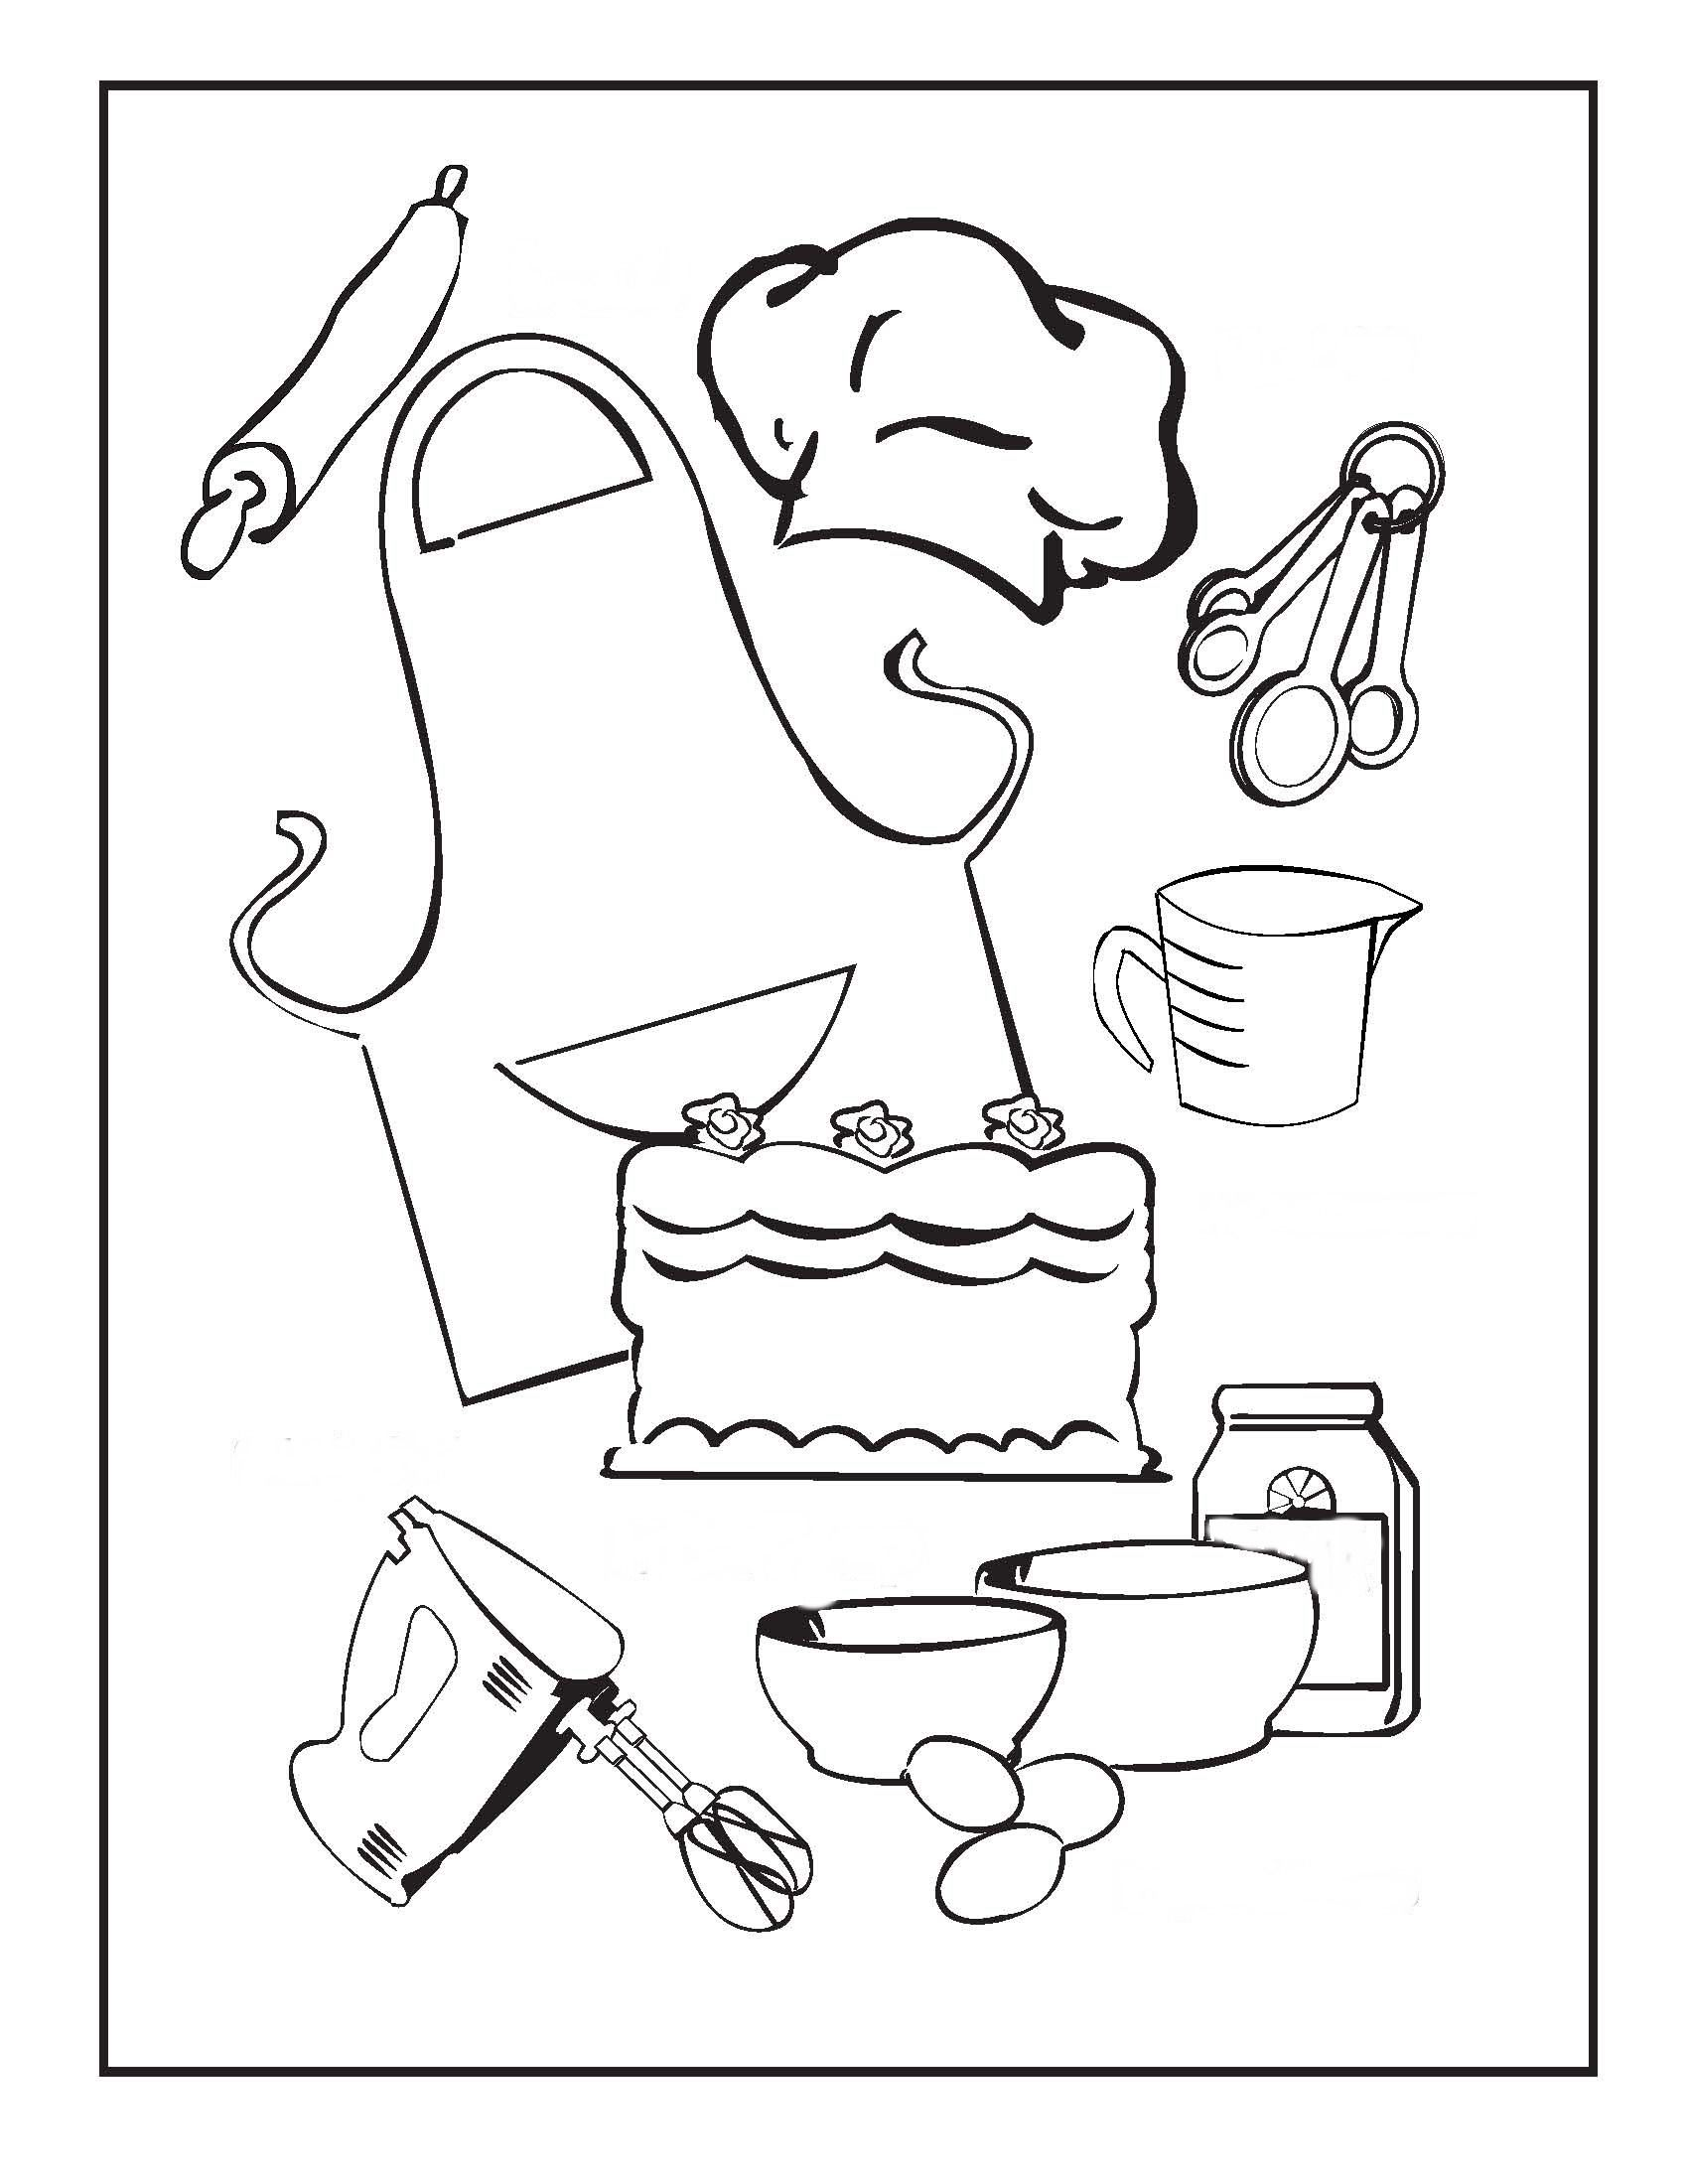 Cooking And Baking Coloring Pages Birthday Printable Coloring Pages Printable Coloring Printable Coloring Pages